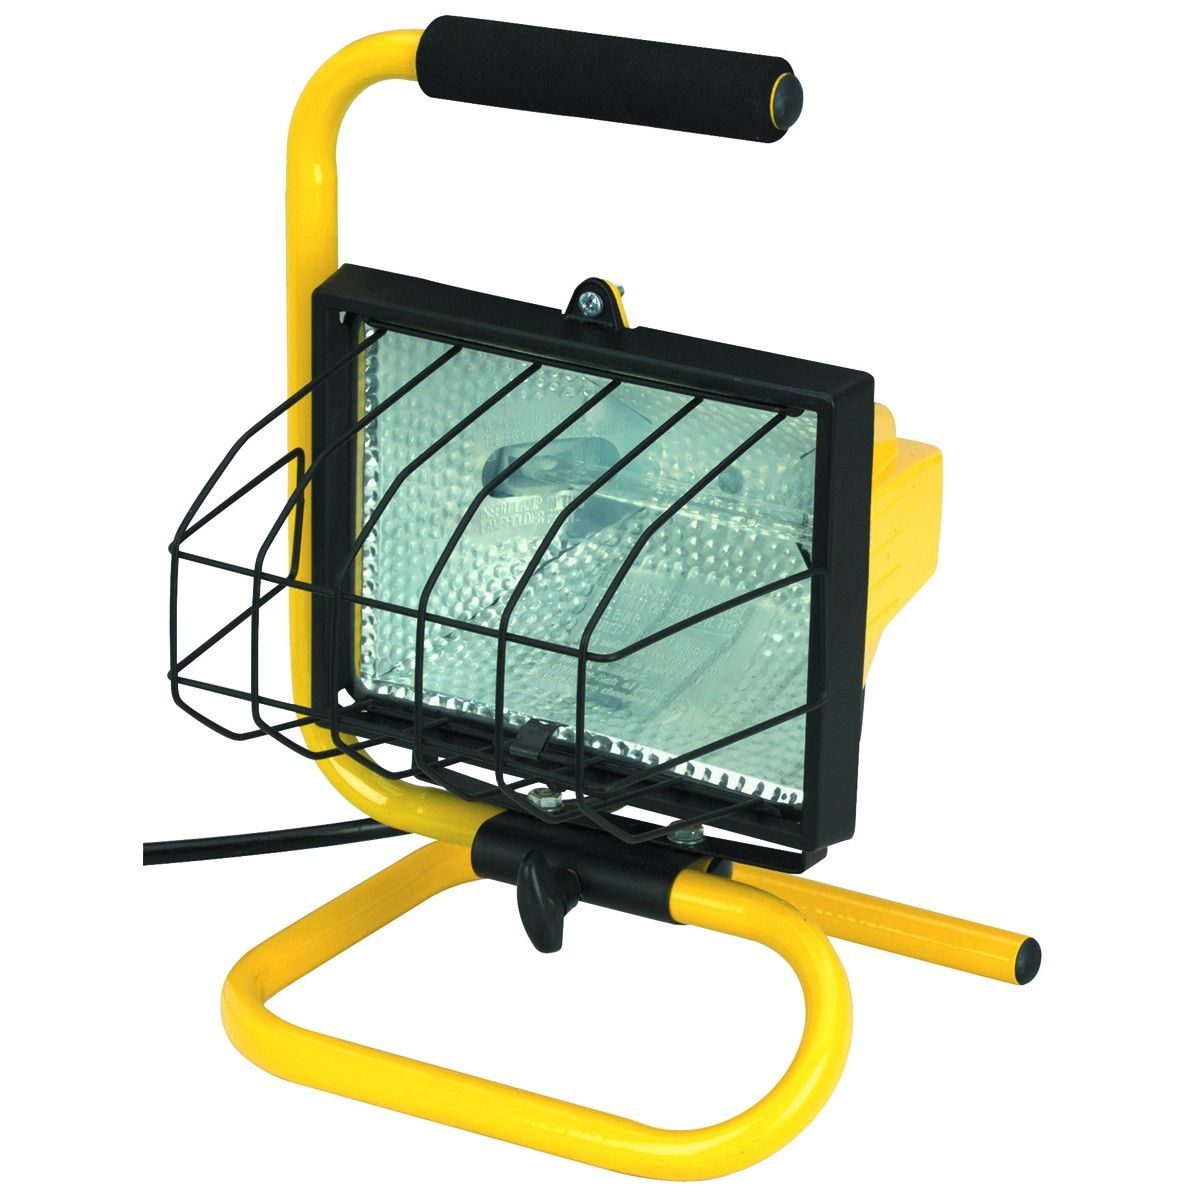 Attractive Portable Halogen Shop Light Inexpensive Option For Keeping Tropical Trees  Warm On Freezing Nights   Harbor Freight $ 13.99 Good Looking